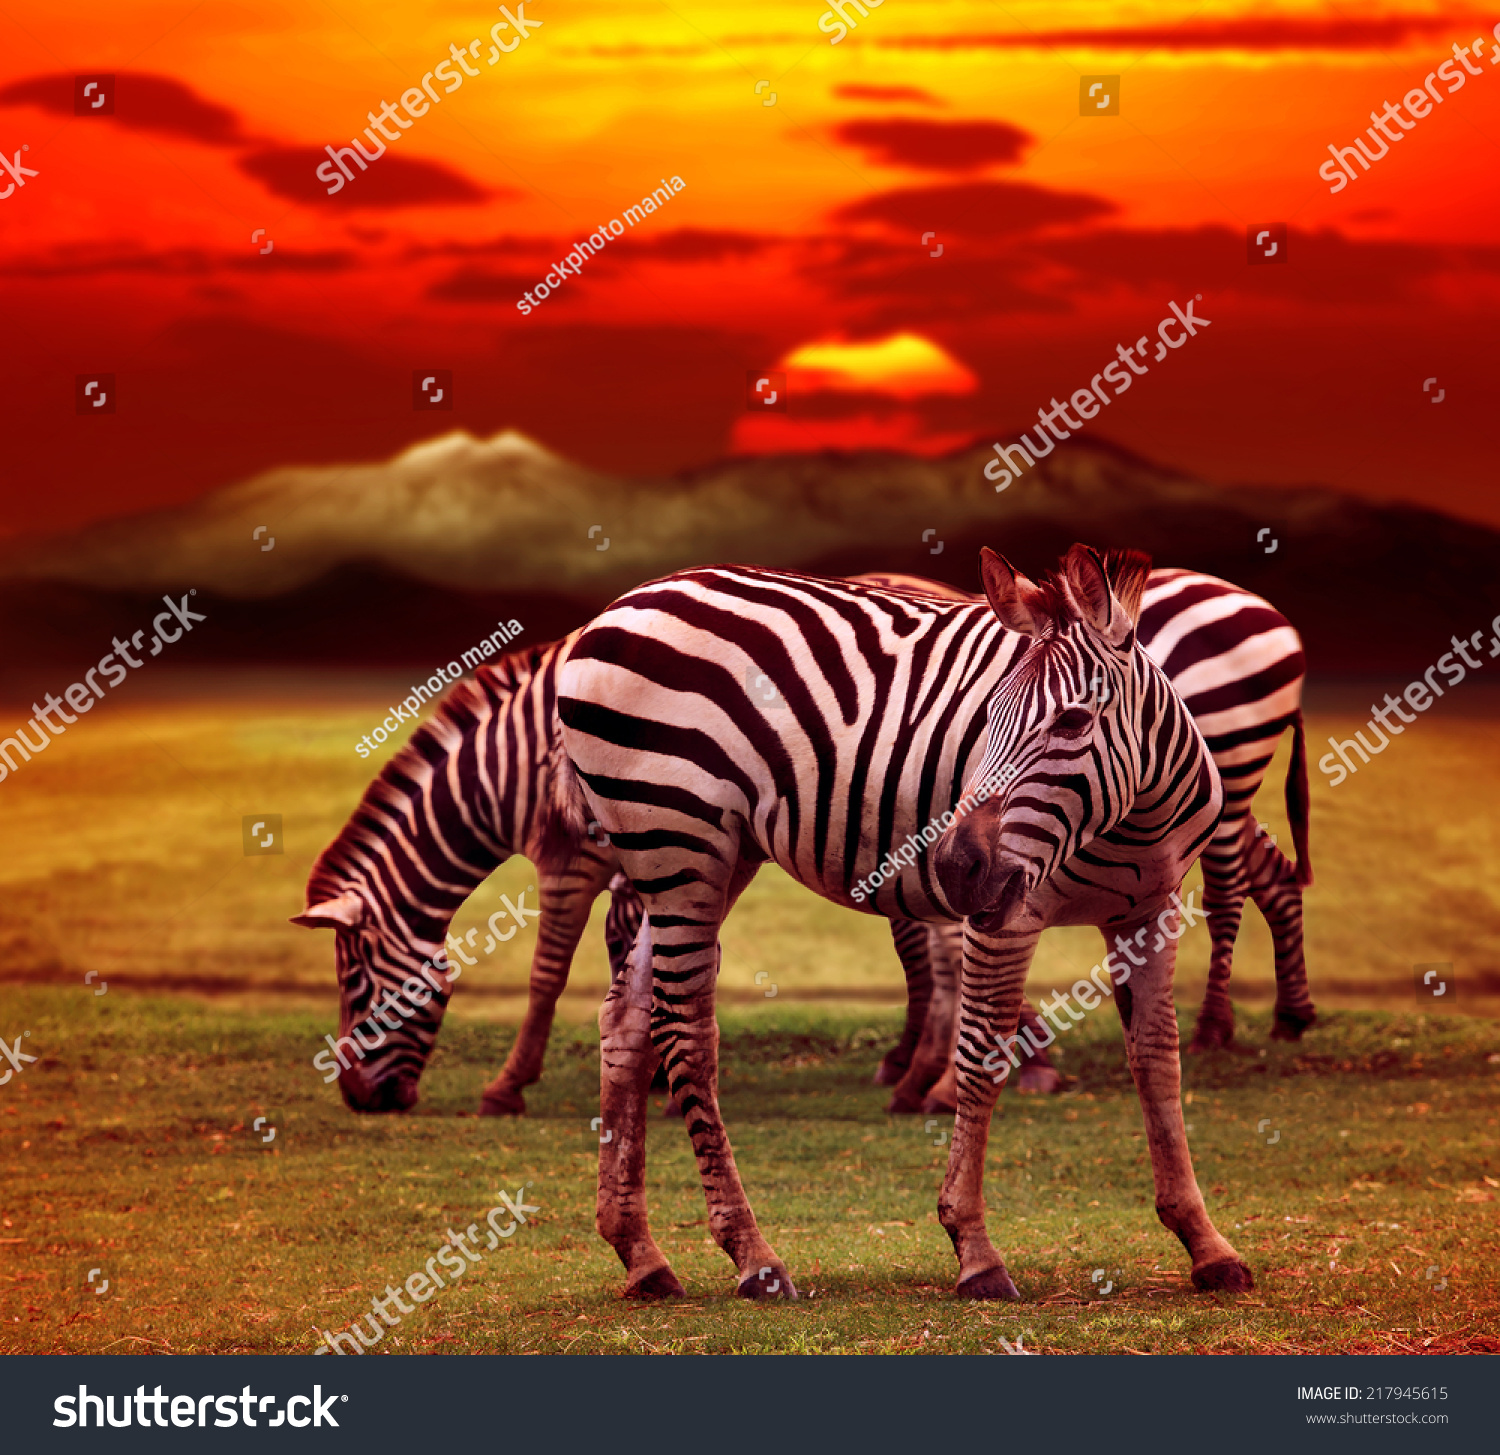 wild zebra standing in green grass field against beautiful dusky sky use for wild life and animals in africa safari wilderness  #217945615